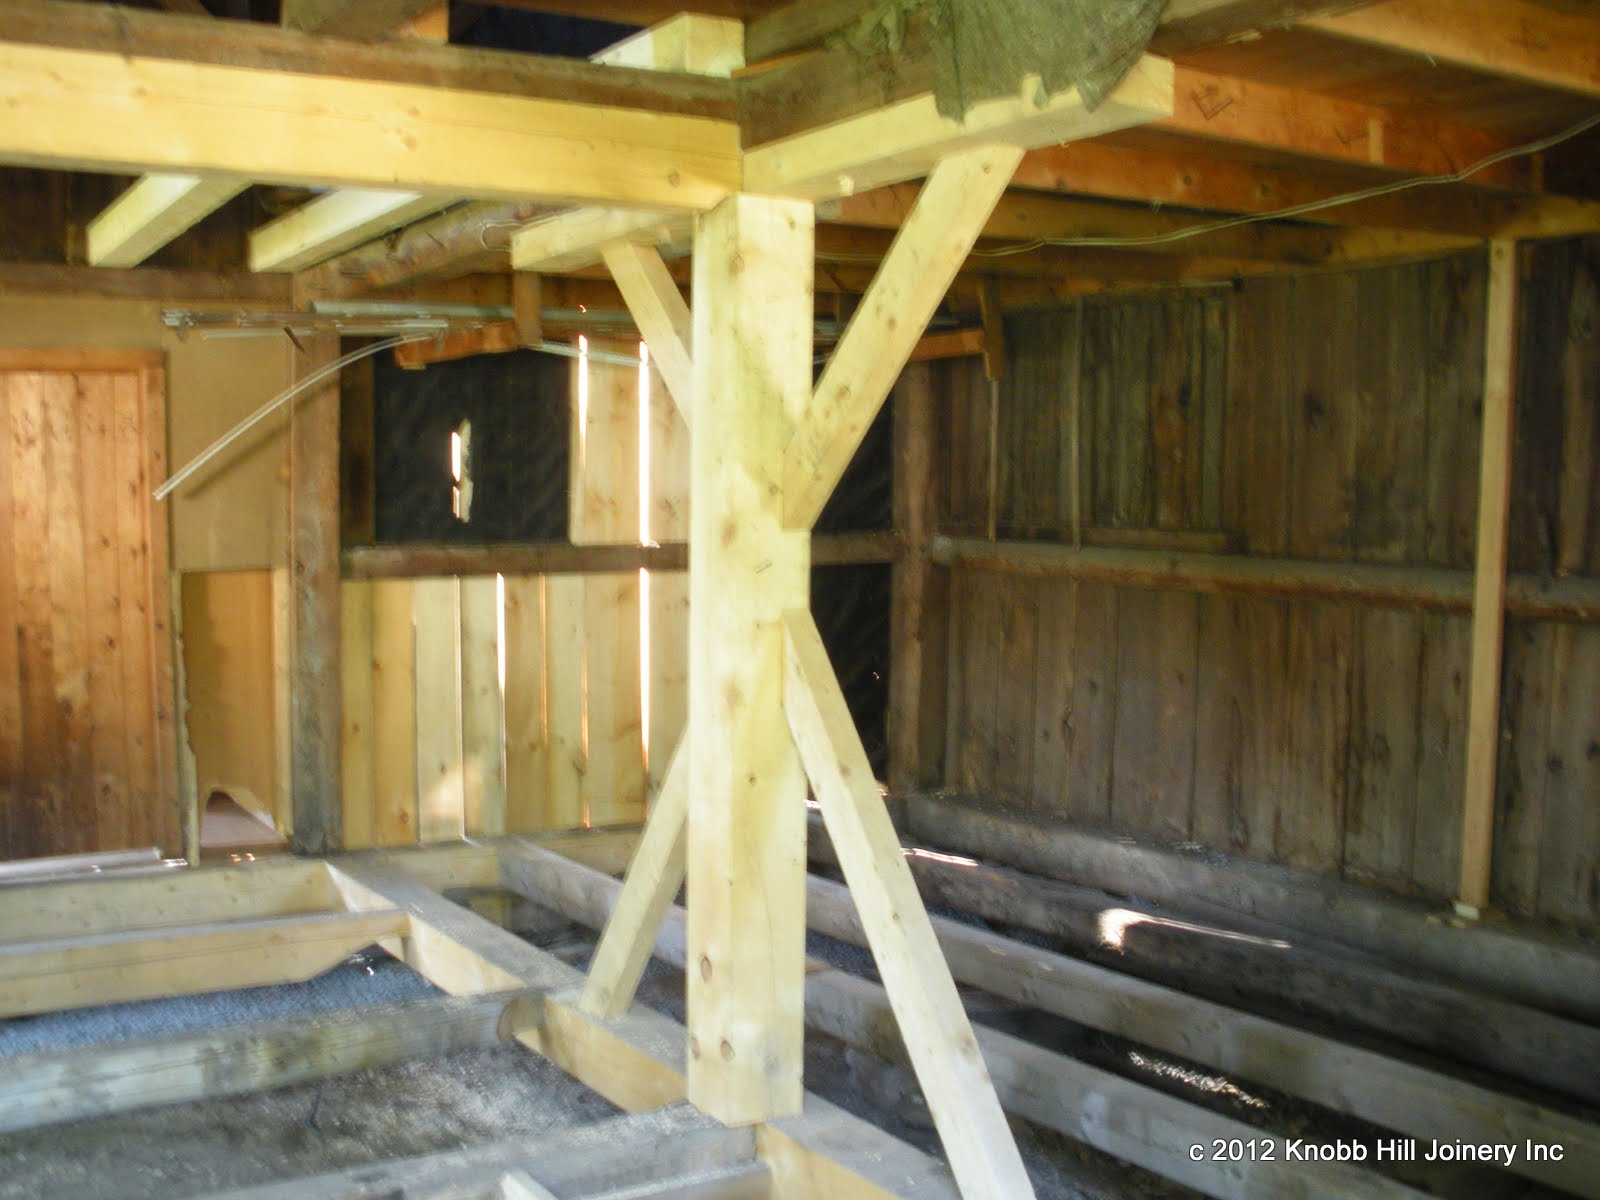 The new sill system, center post and lintel in place with an additional lintel for the main floor girt.